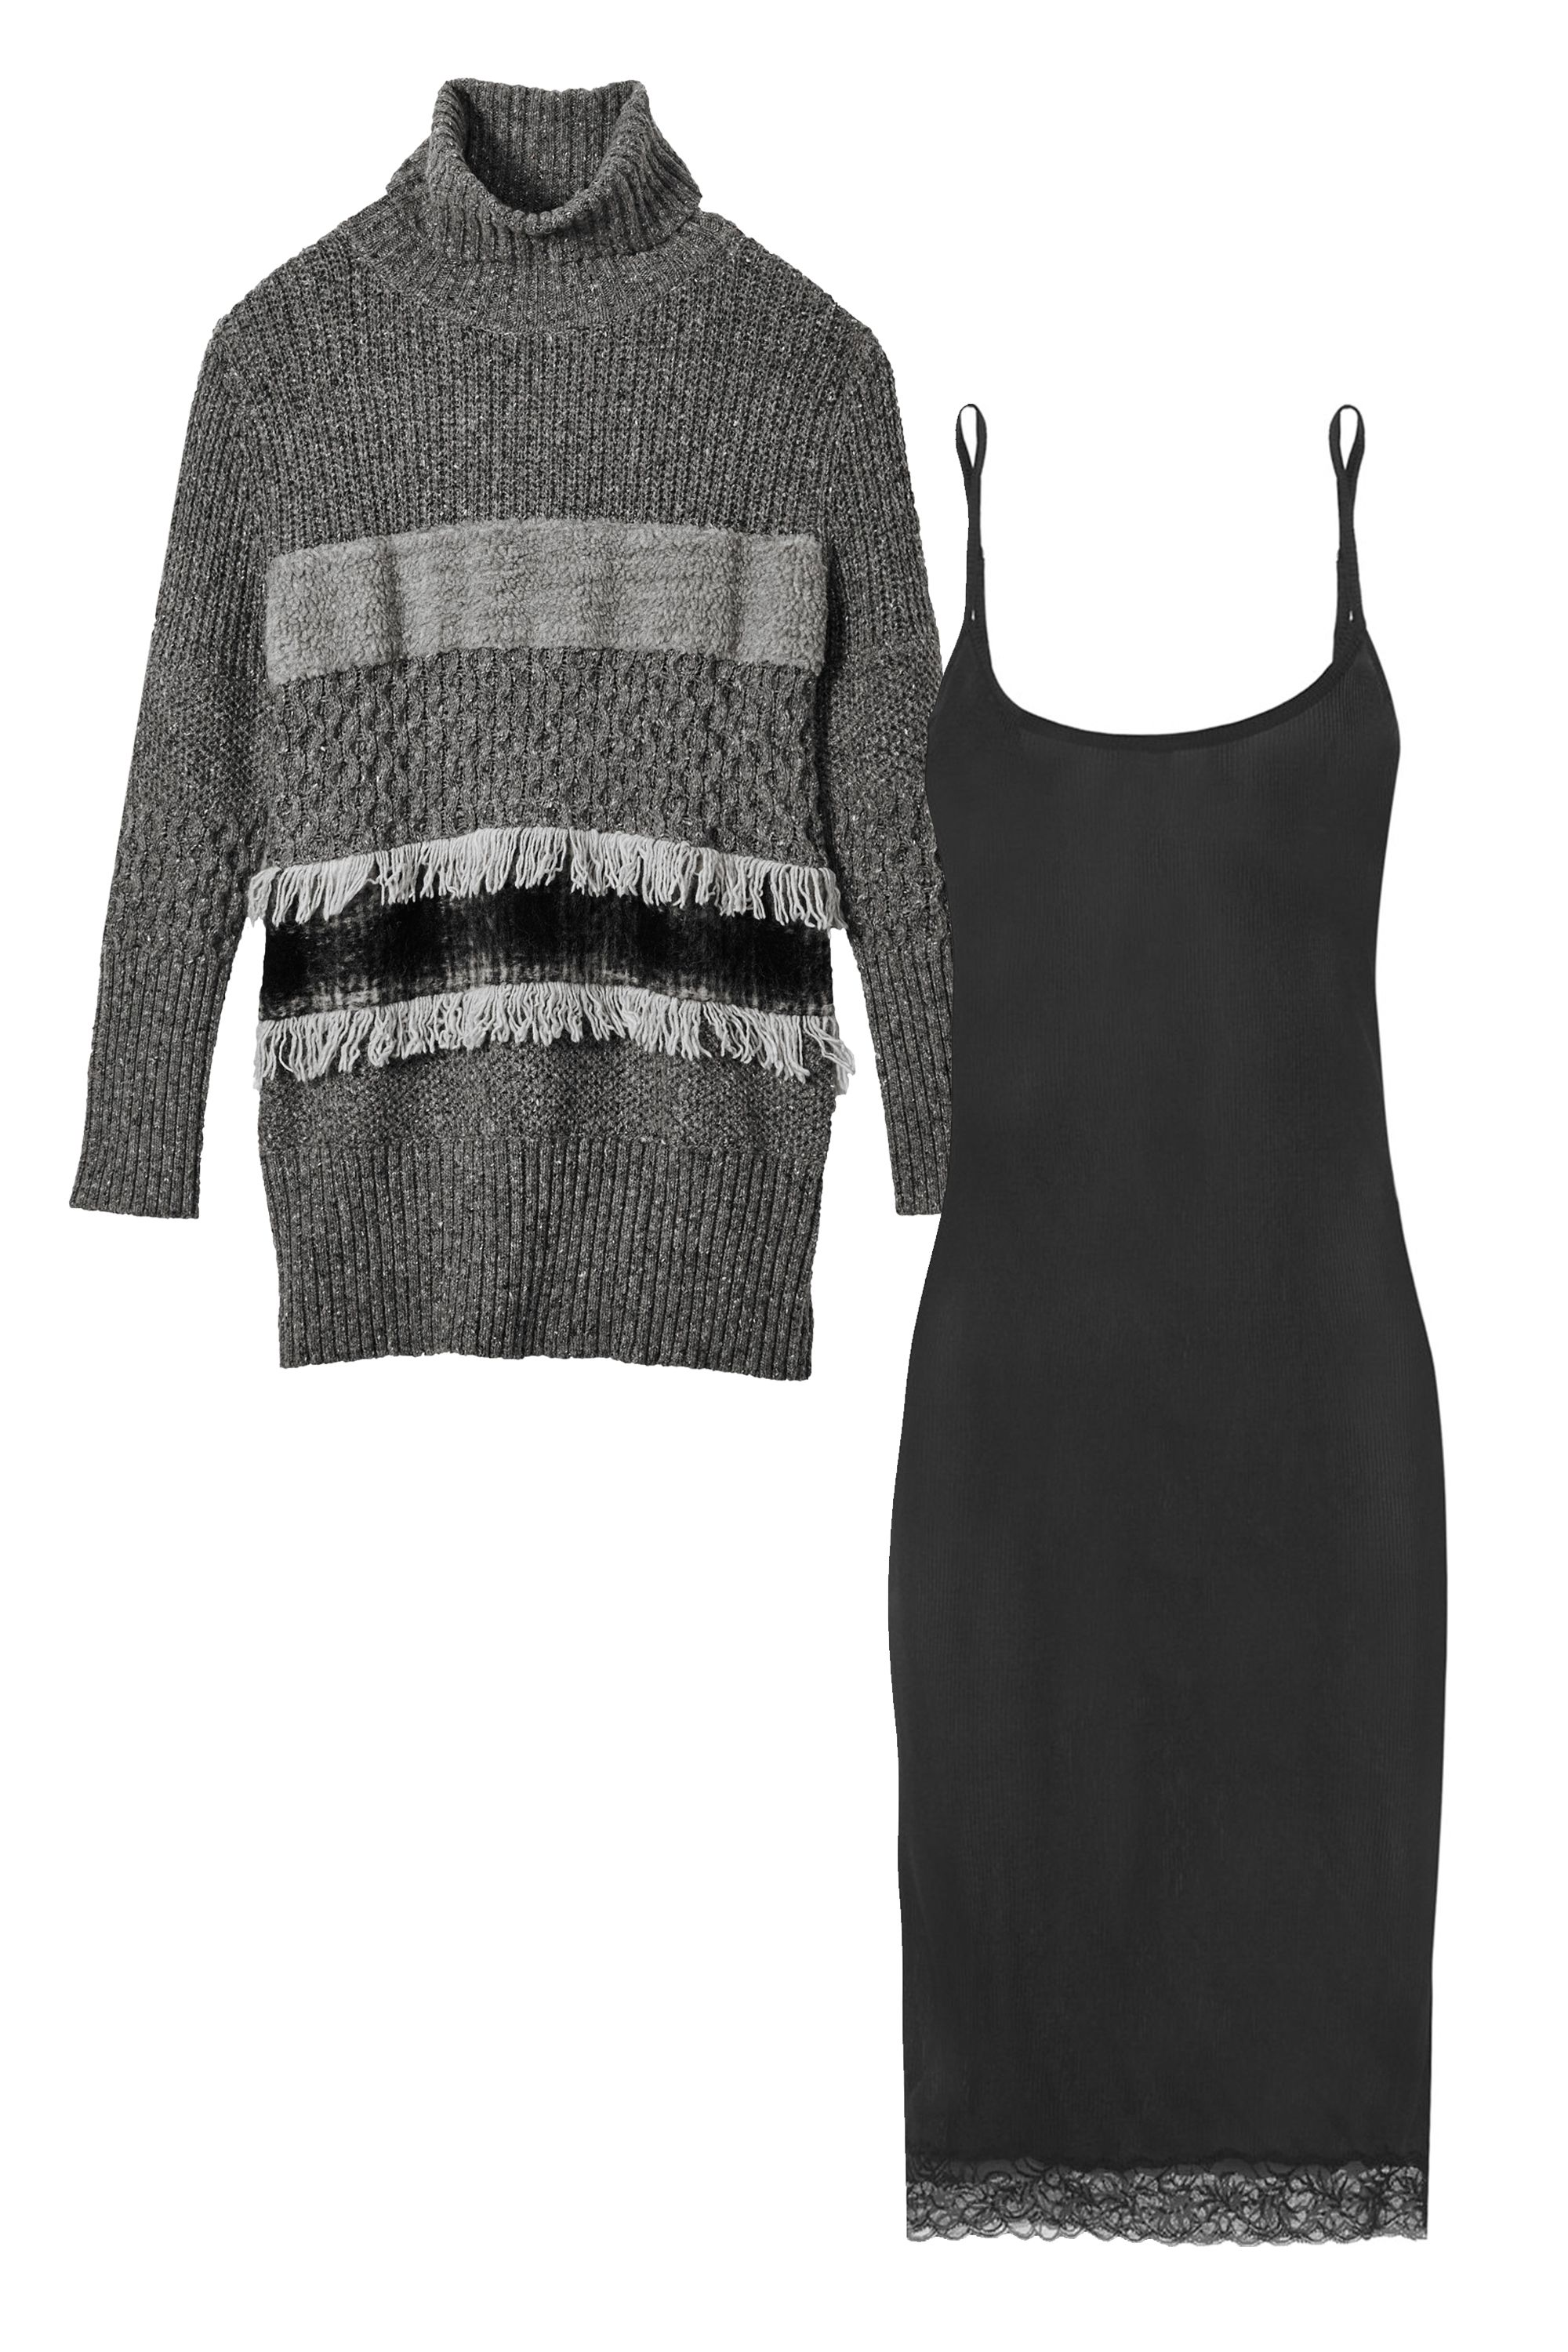 """<p><strong>Banana Republic </strong>Collage-Stripe Sweater Tunic, $98, <a href=""""http://bananarepublic.gap.com/browse/product.do?vid=3&pid=726016002"""" target=""""_blank"""">bananarepublic.com</a><span class=""""redactor-invisible-space"""">; <strong>La</strong> <strong>Perla</strong> Silk Breath Leavers Lace-Trimmed Silk-Blend Jersey Chemise, $295, <a href=""""http://www.net-a-porter.com/us/en/product/594507/La_Perla/silk-breath-leavers-lace-trimmed-silk-blend-jersey-chemise """" target=""""_blank"""">net-a-porter.com</a></span></p>"""